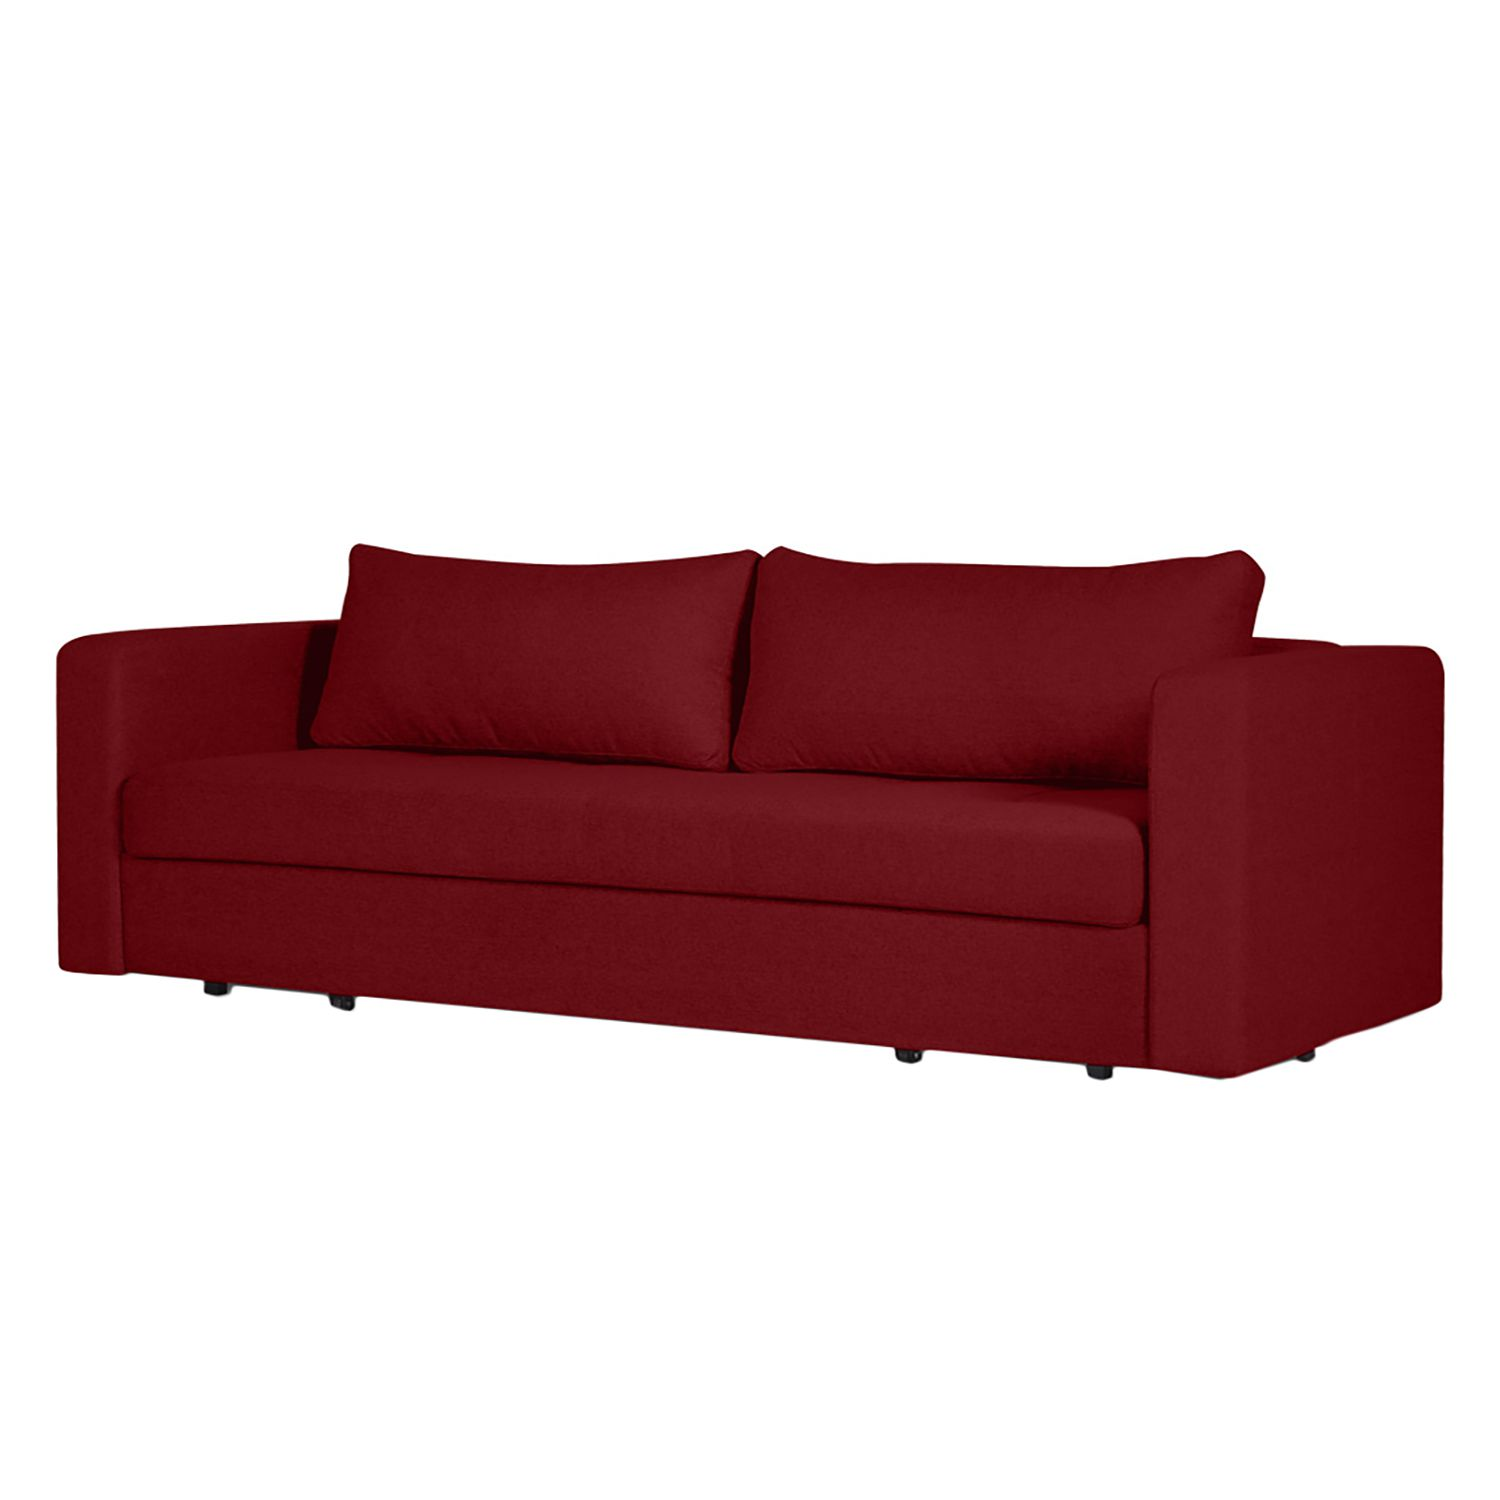 clic clac eperny tissu tissu bora rouge fredriks par fredriks chez home24 fr. Black Bedroom Furniture Sets. Home Design Ideas